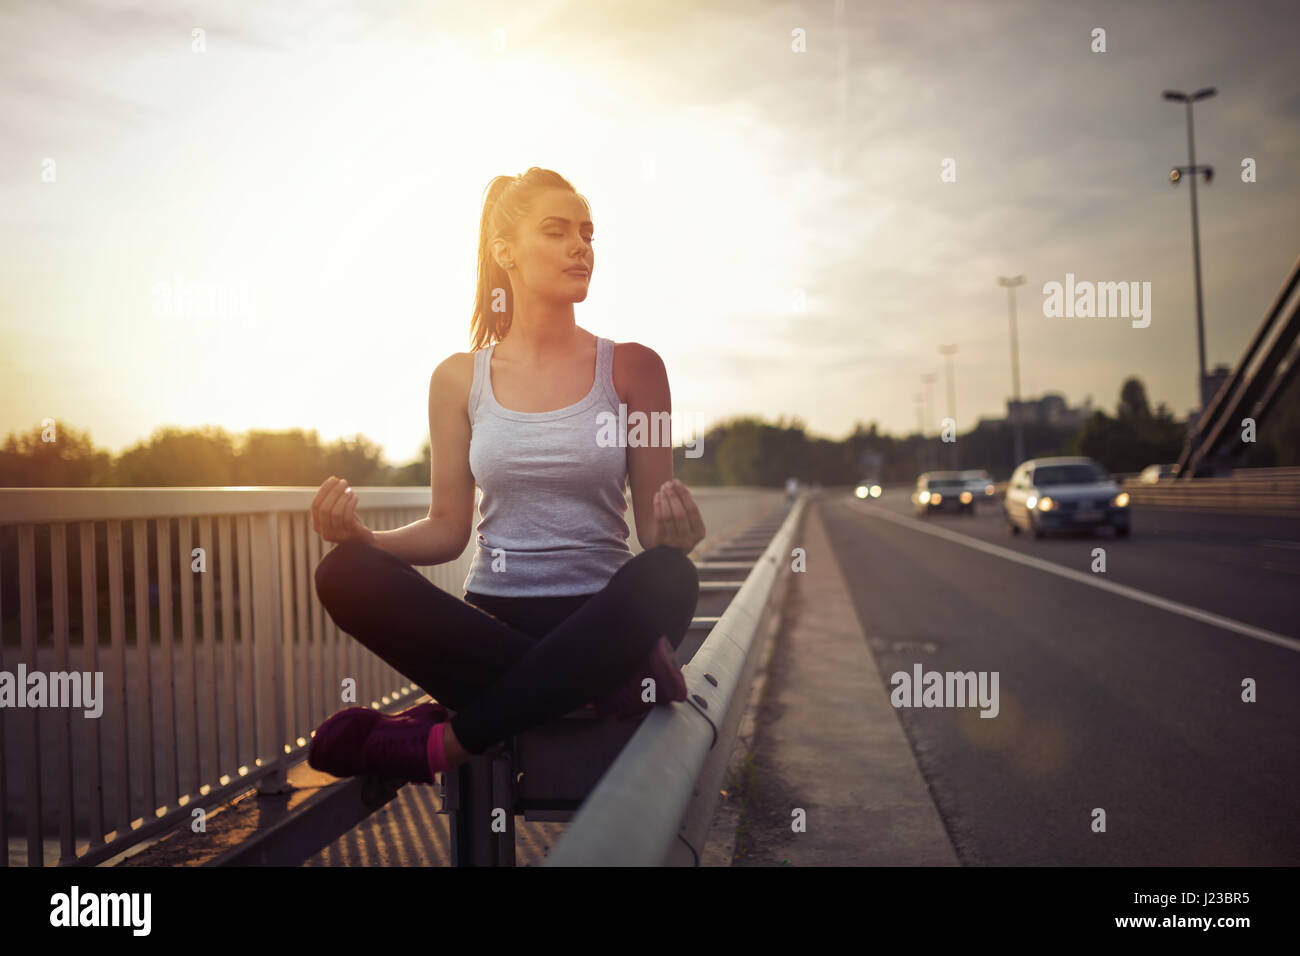 Beautiful female getting away from urban fast paced life - Stock Image